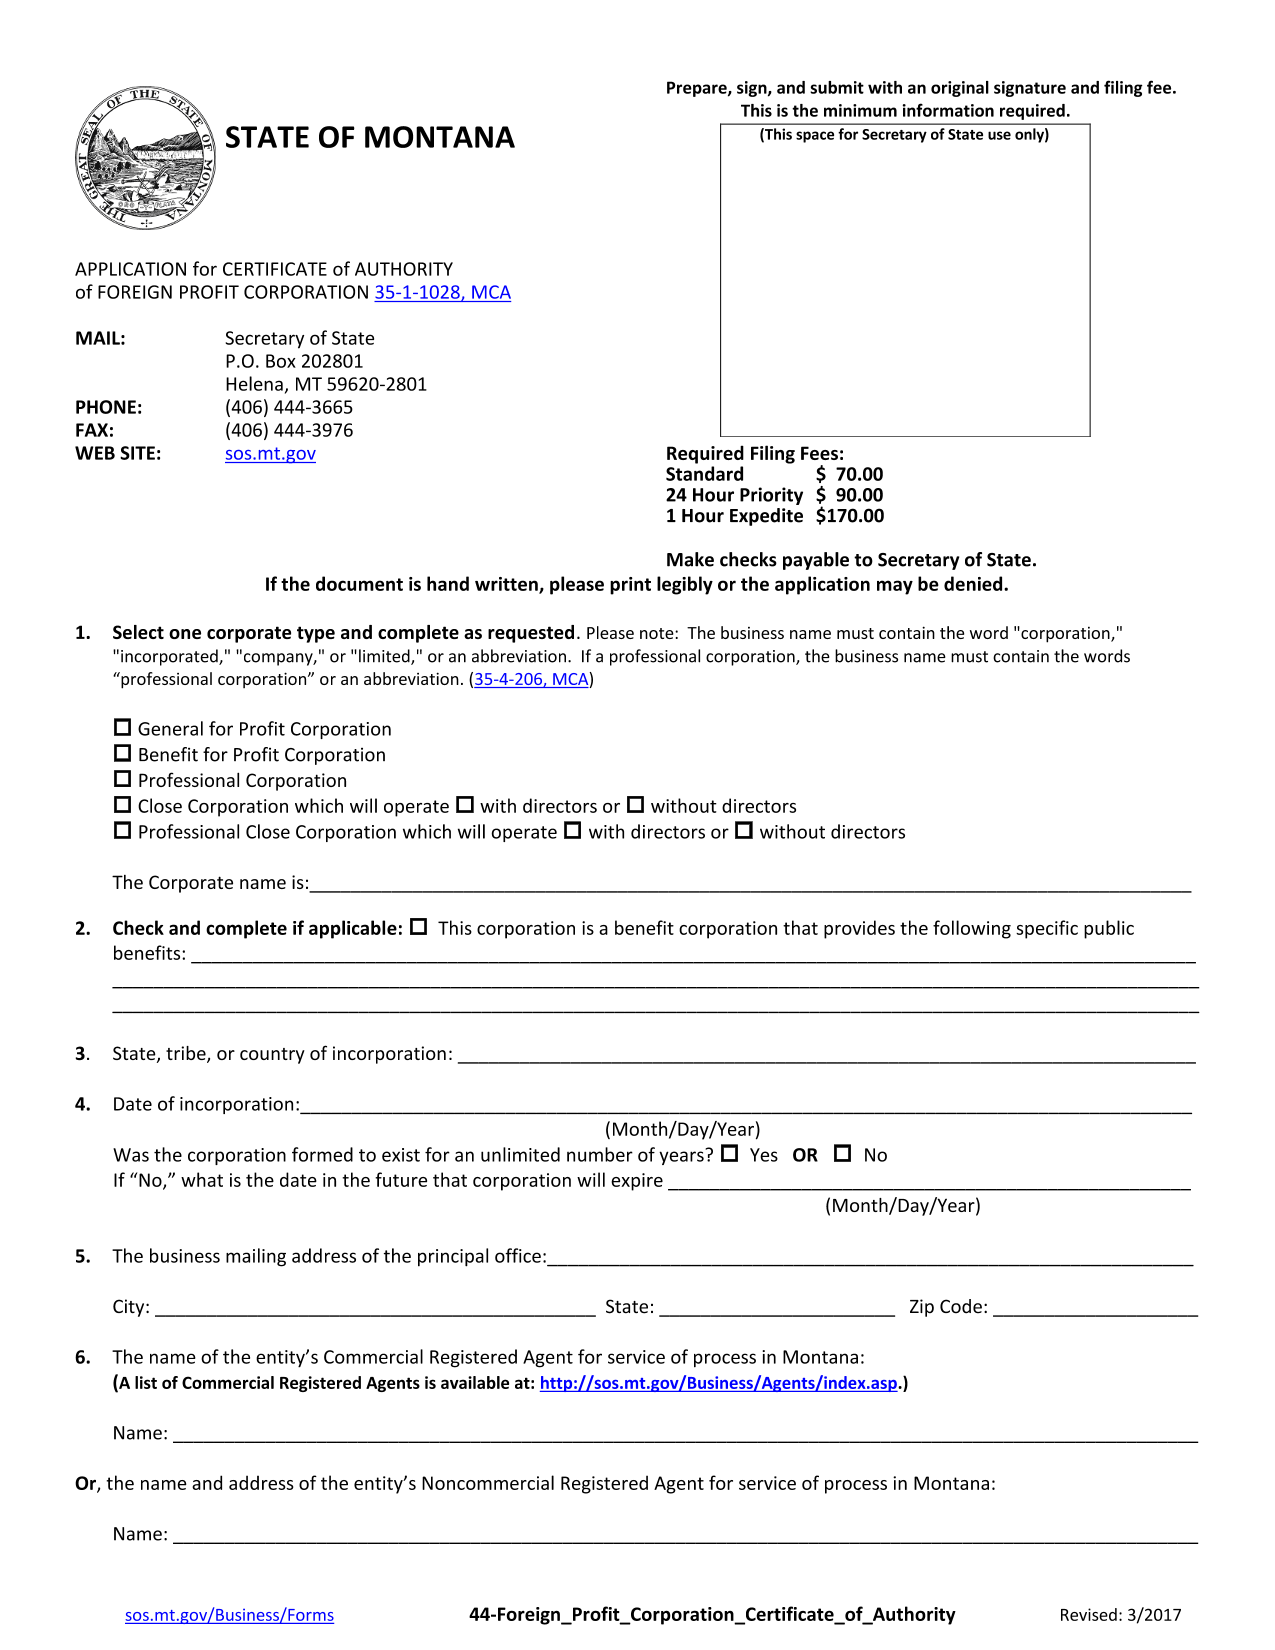 montana-foreign-corporation-certificate-of-authority-application